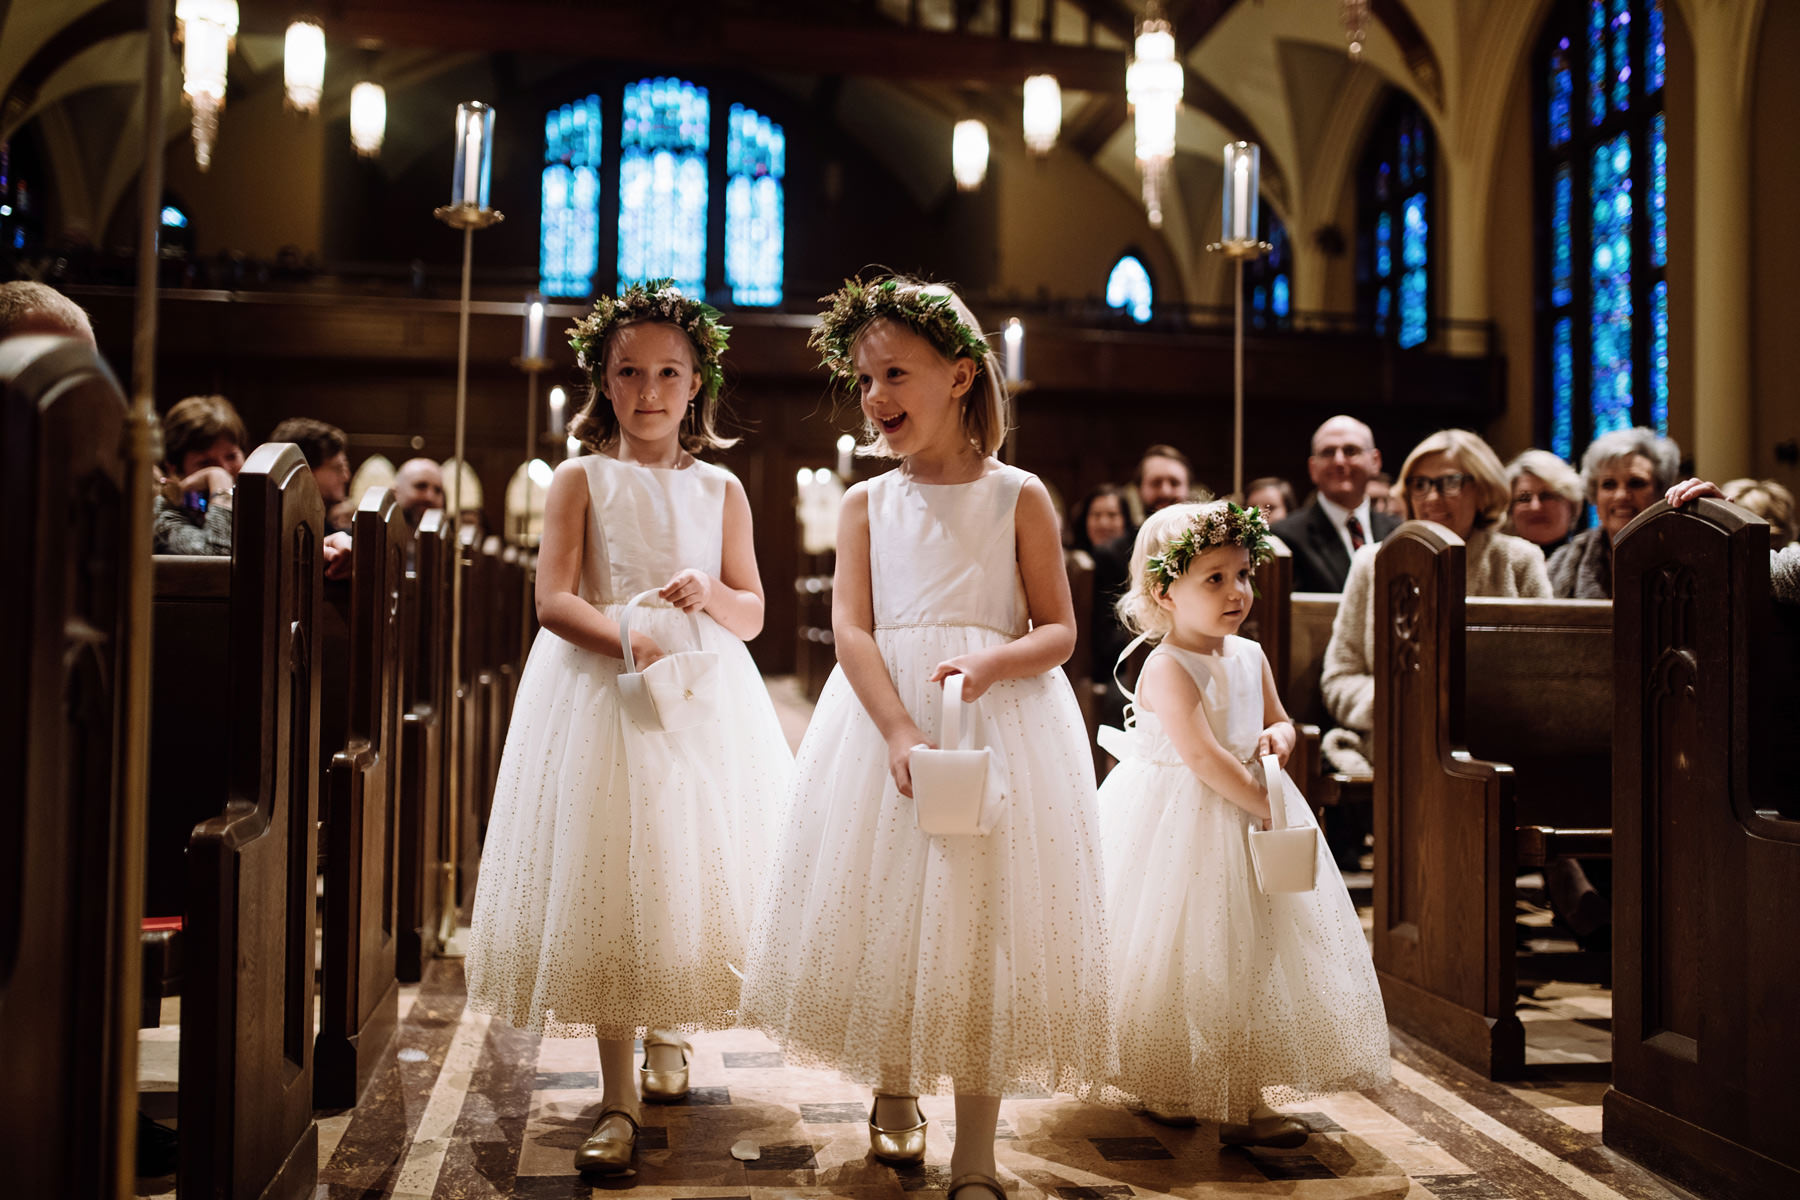 139_Memorial Presbyterian Church & North 13th Events Wedding St. Louis, Missouri_Kindling Wedding Photography.JPG